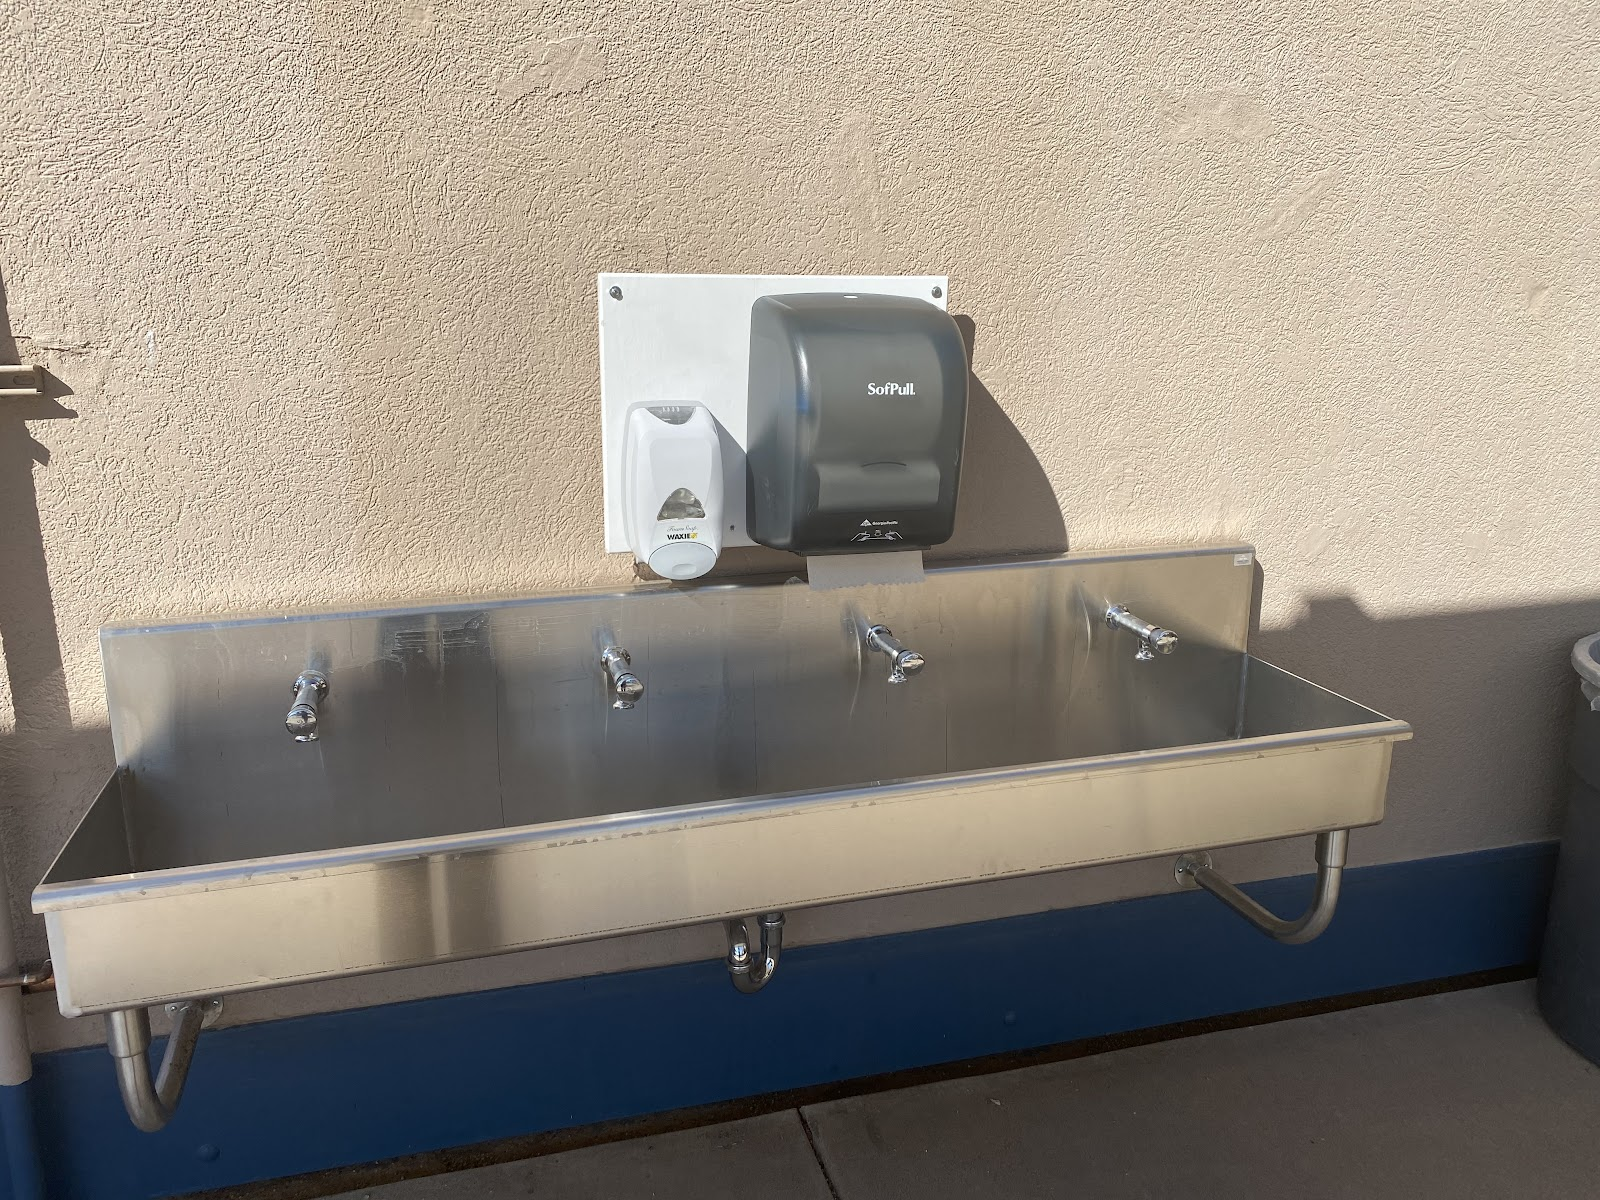 A handwashing station with four faucets was installed right outside of the cafeteria for student use